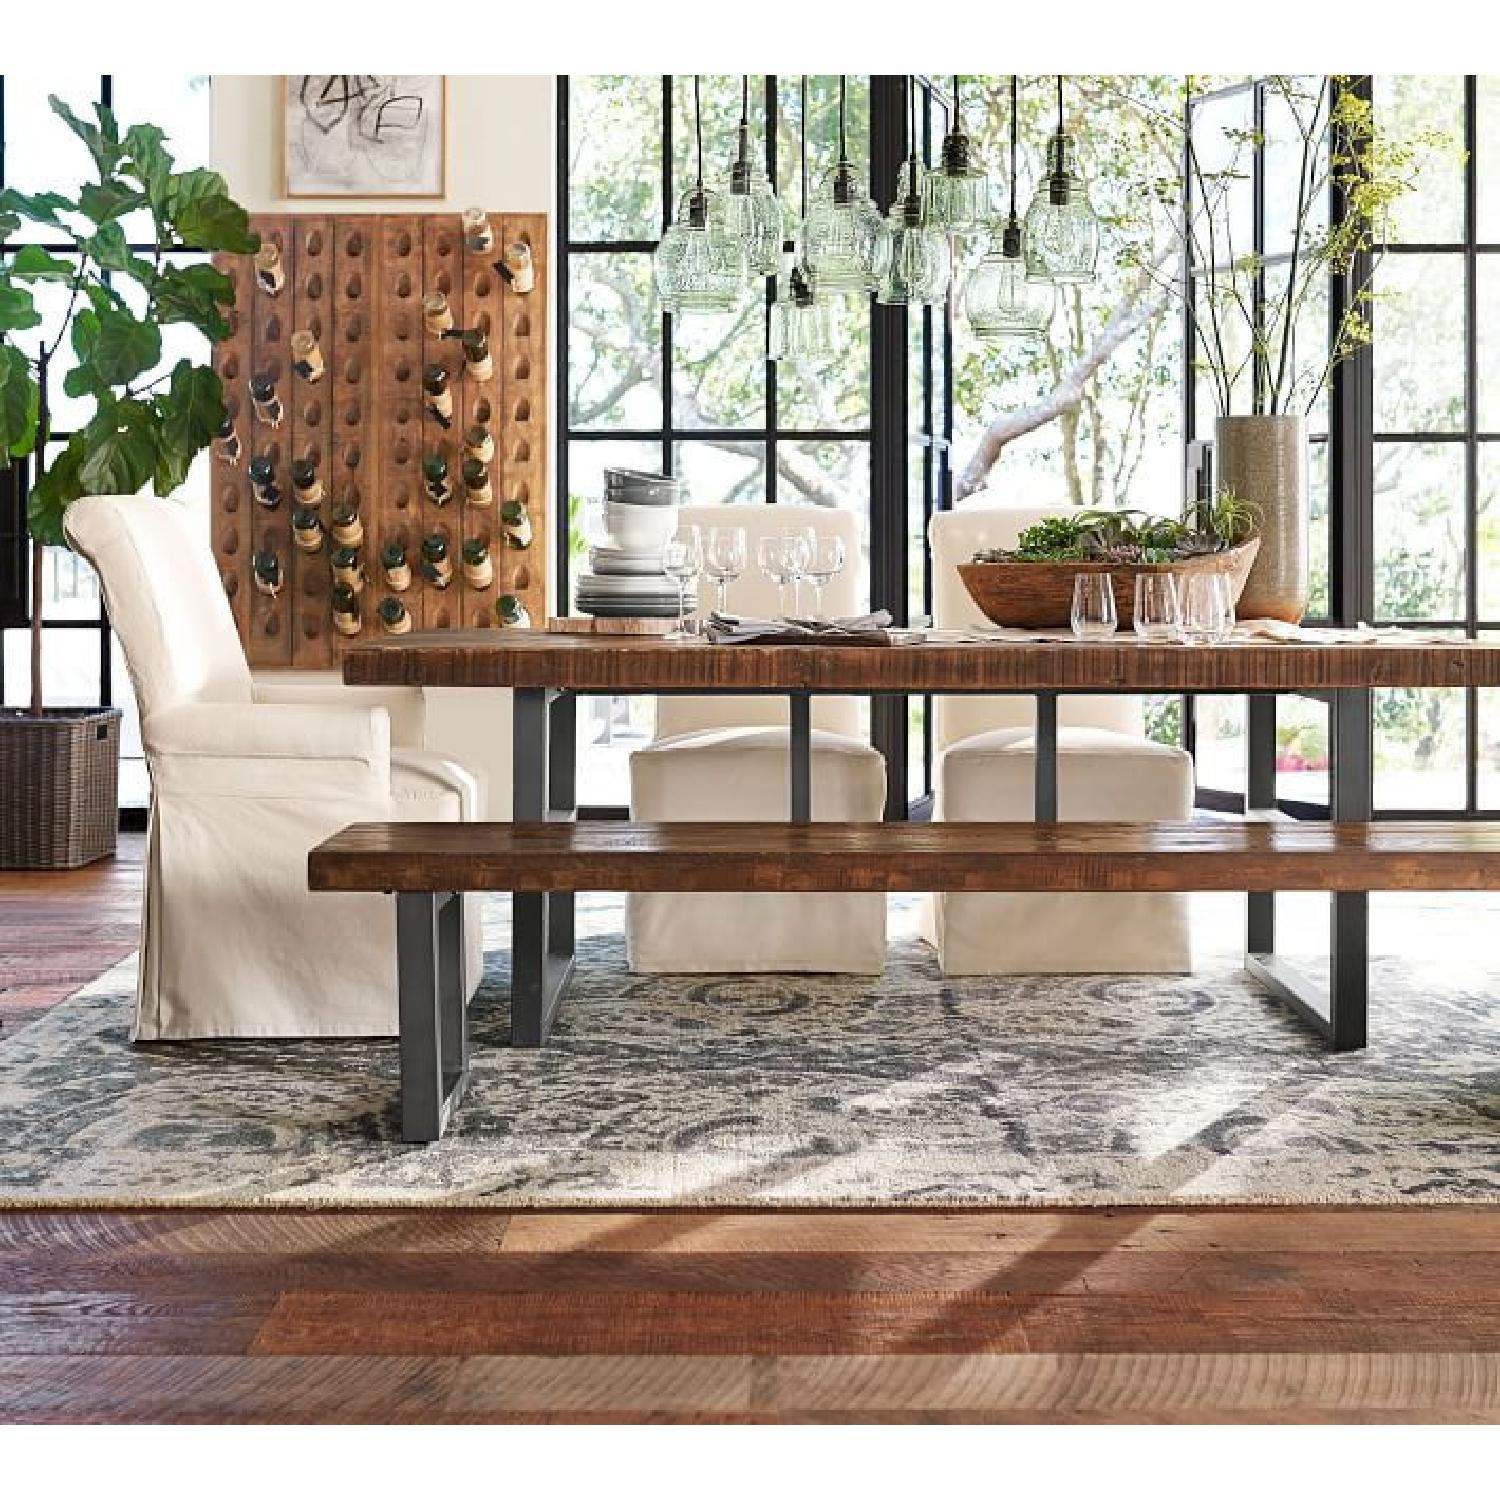 Pottery Barn Griffin Reclaimed Wood Dining Table - image-4